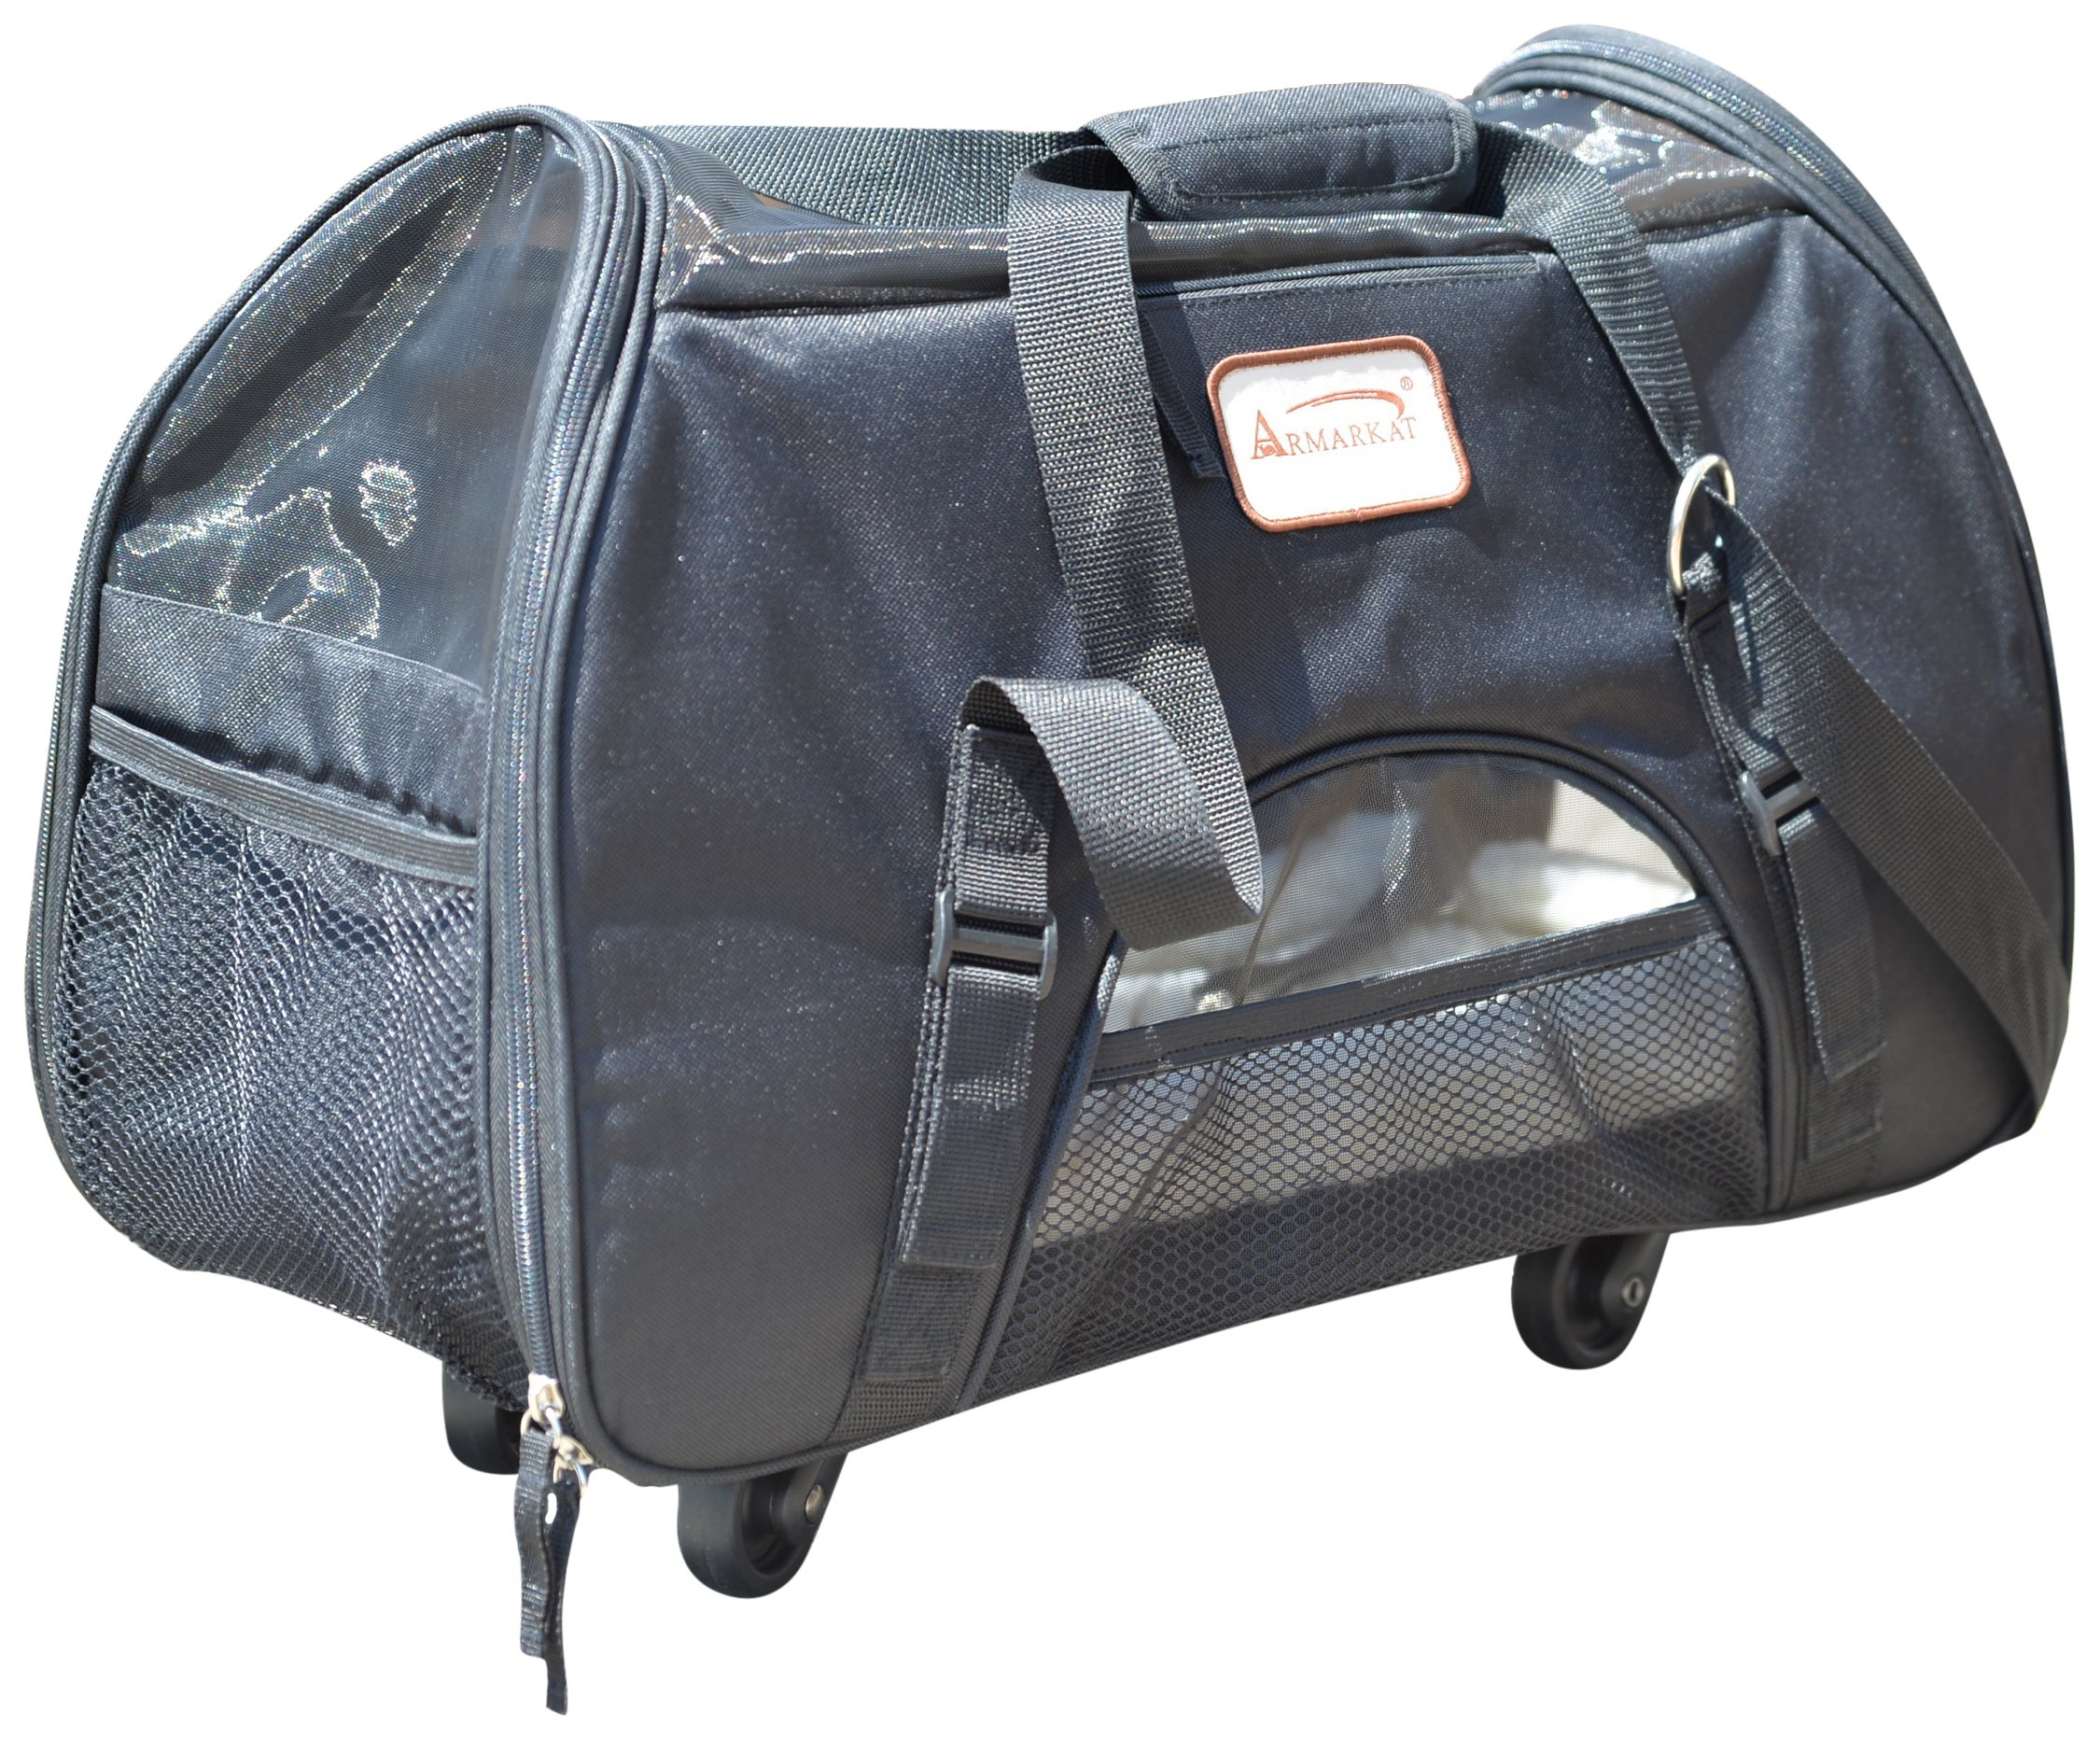 Armarkat PC101B Roll Away Pet Carrier